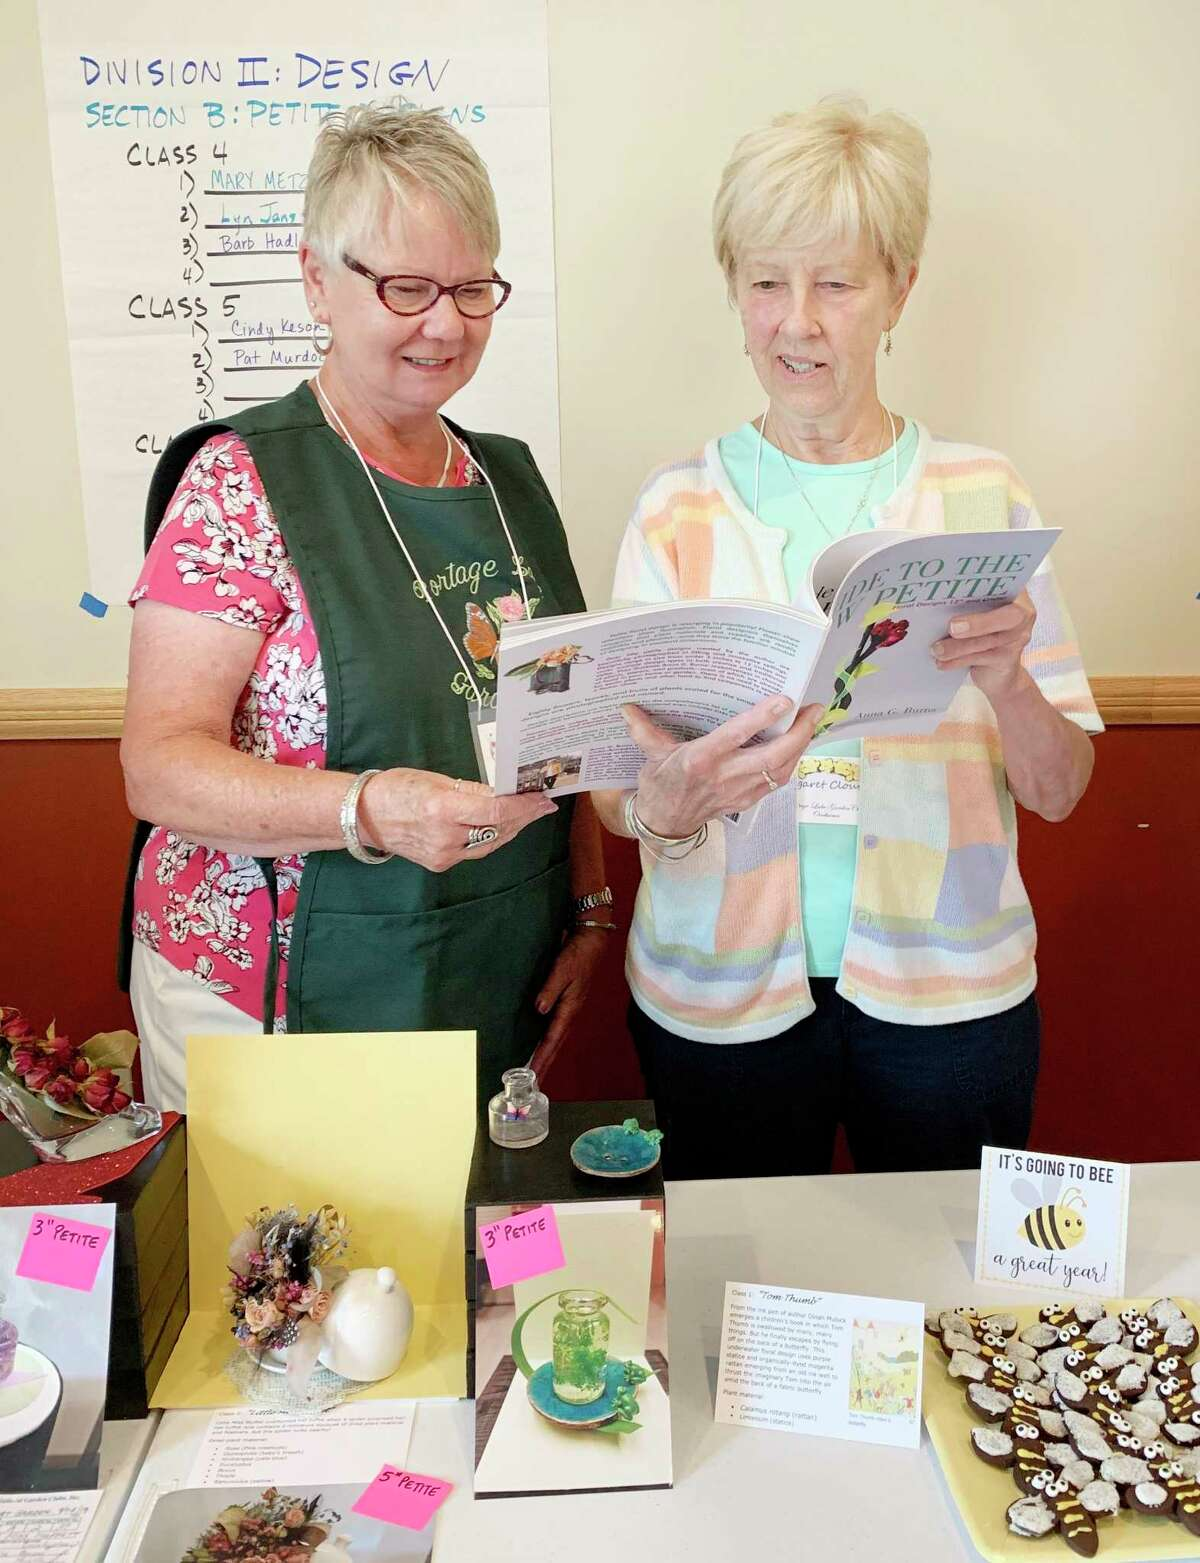 Portage Lake Garden Clubmembers LaVonne Beebe and Margaret Cloutier discuss entering the Petite Design section of the Design Division for theclub's 2022 Flower Show. (Courtesy photo/Elaine Maylen)